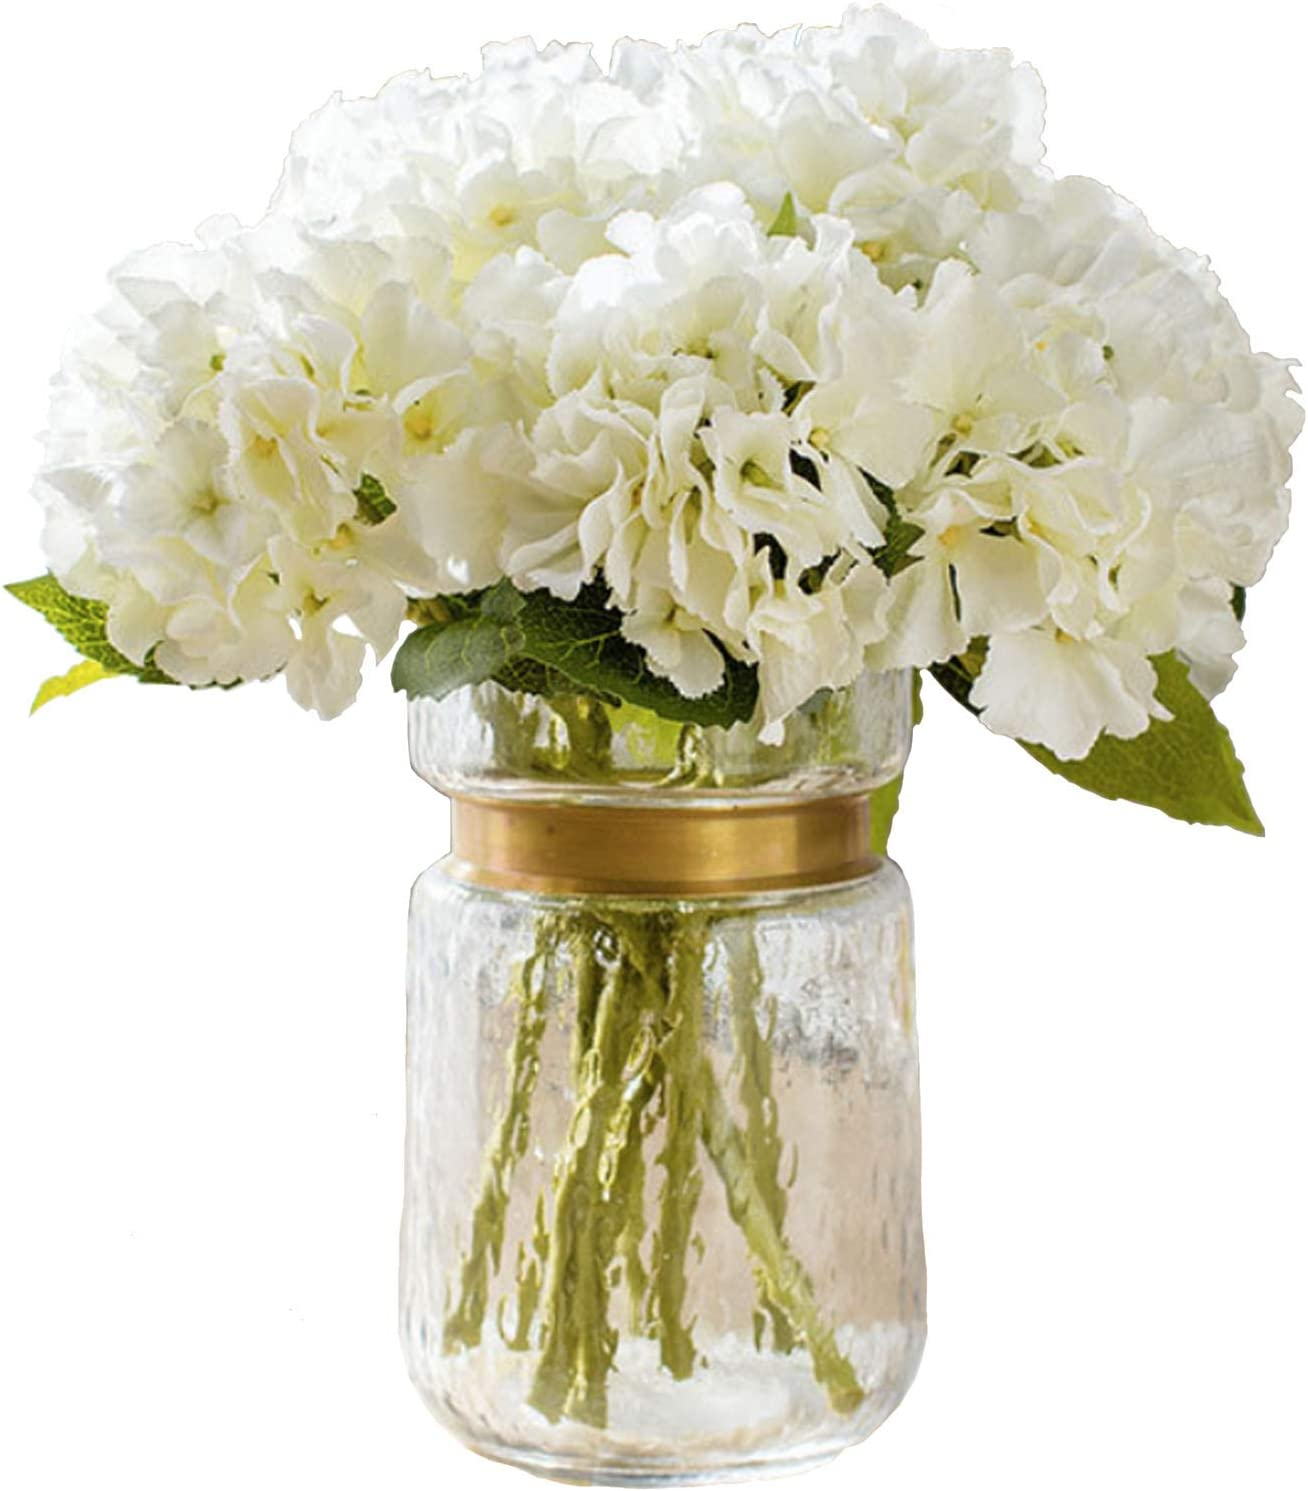 FagusHome Artificial Now free shipping Flowers 8 Special price Hydrangea Pcs Silk Bouque